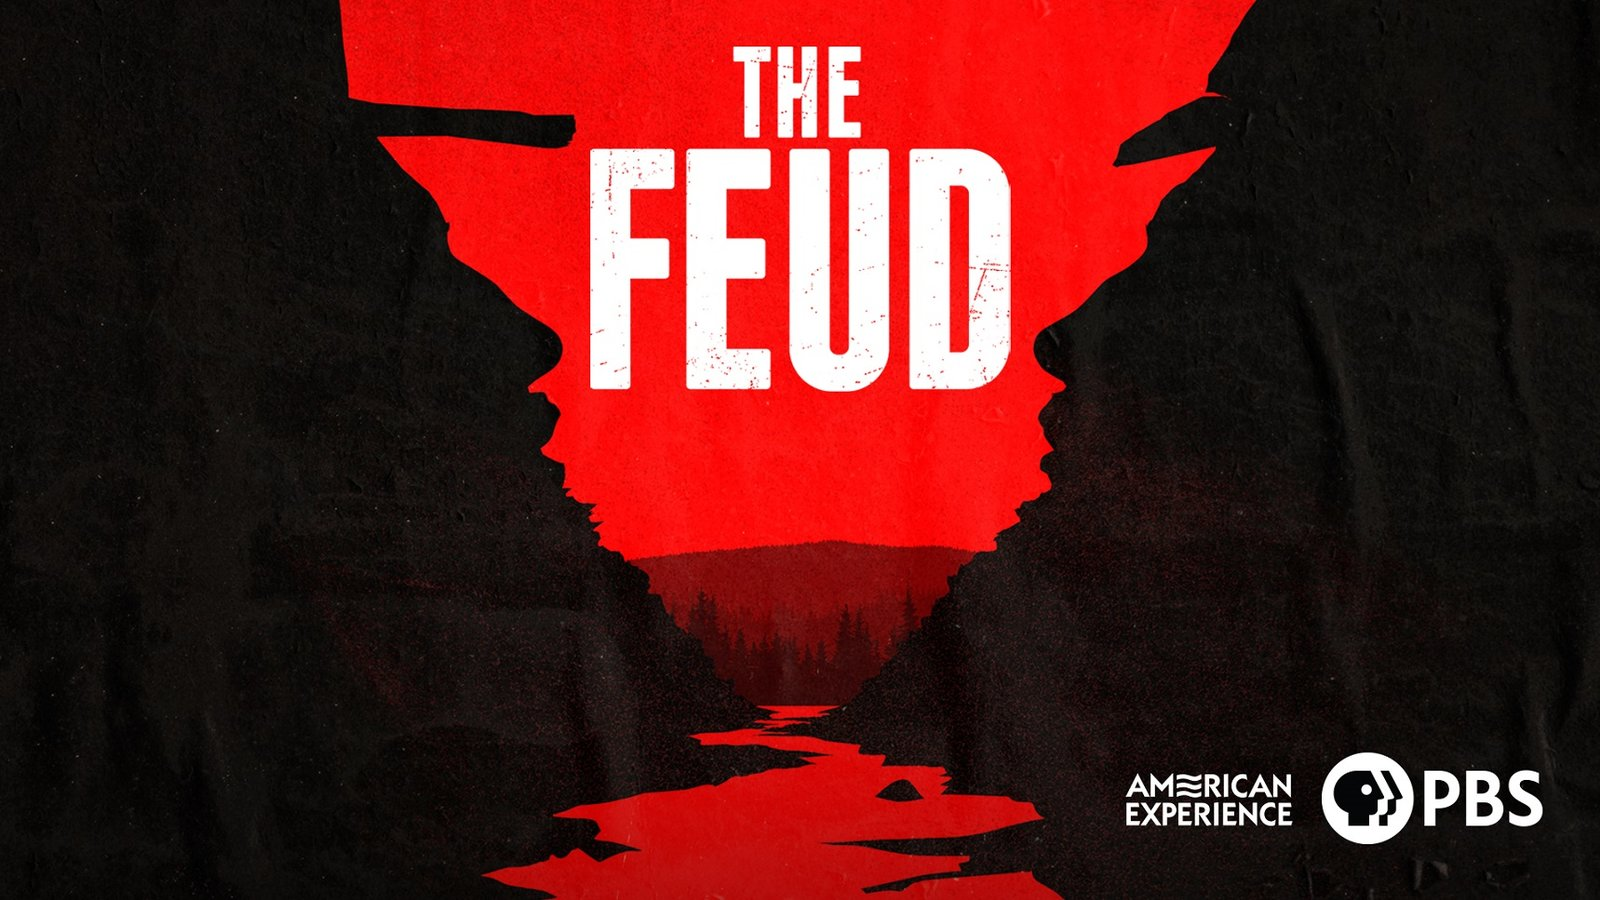 American Experience: The Feud